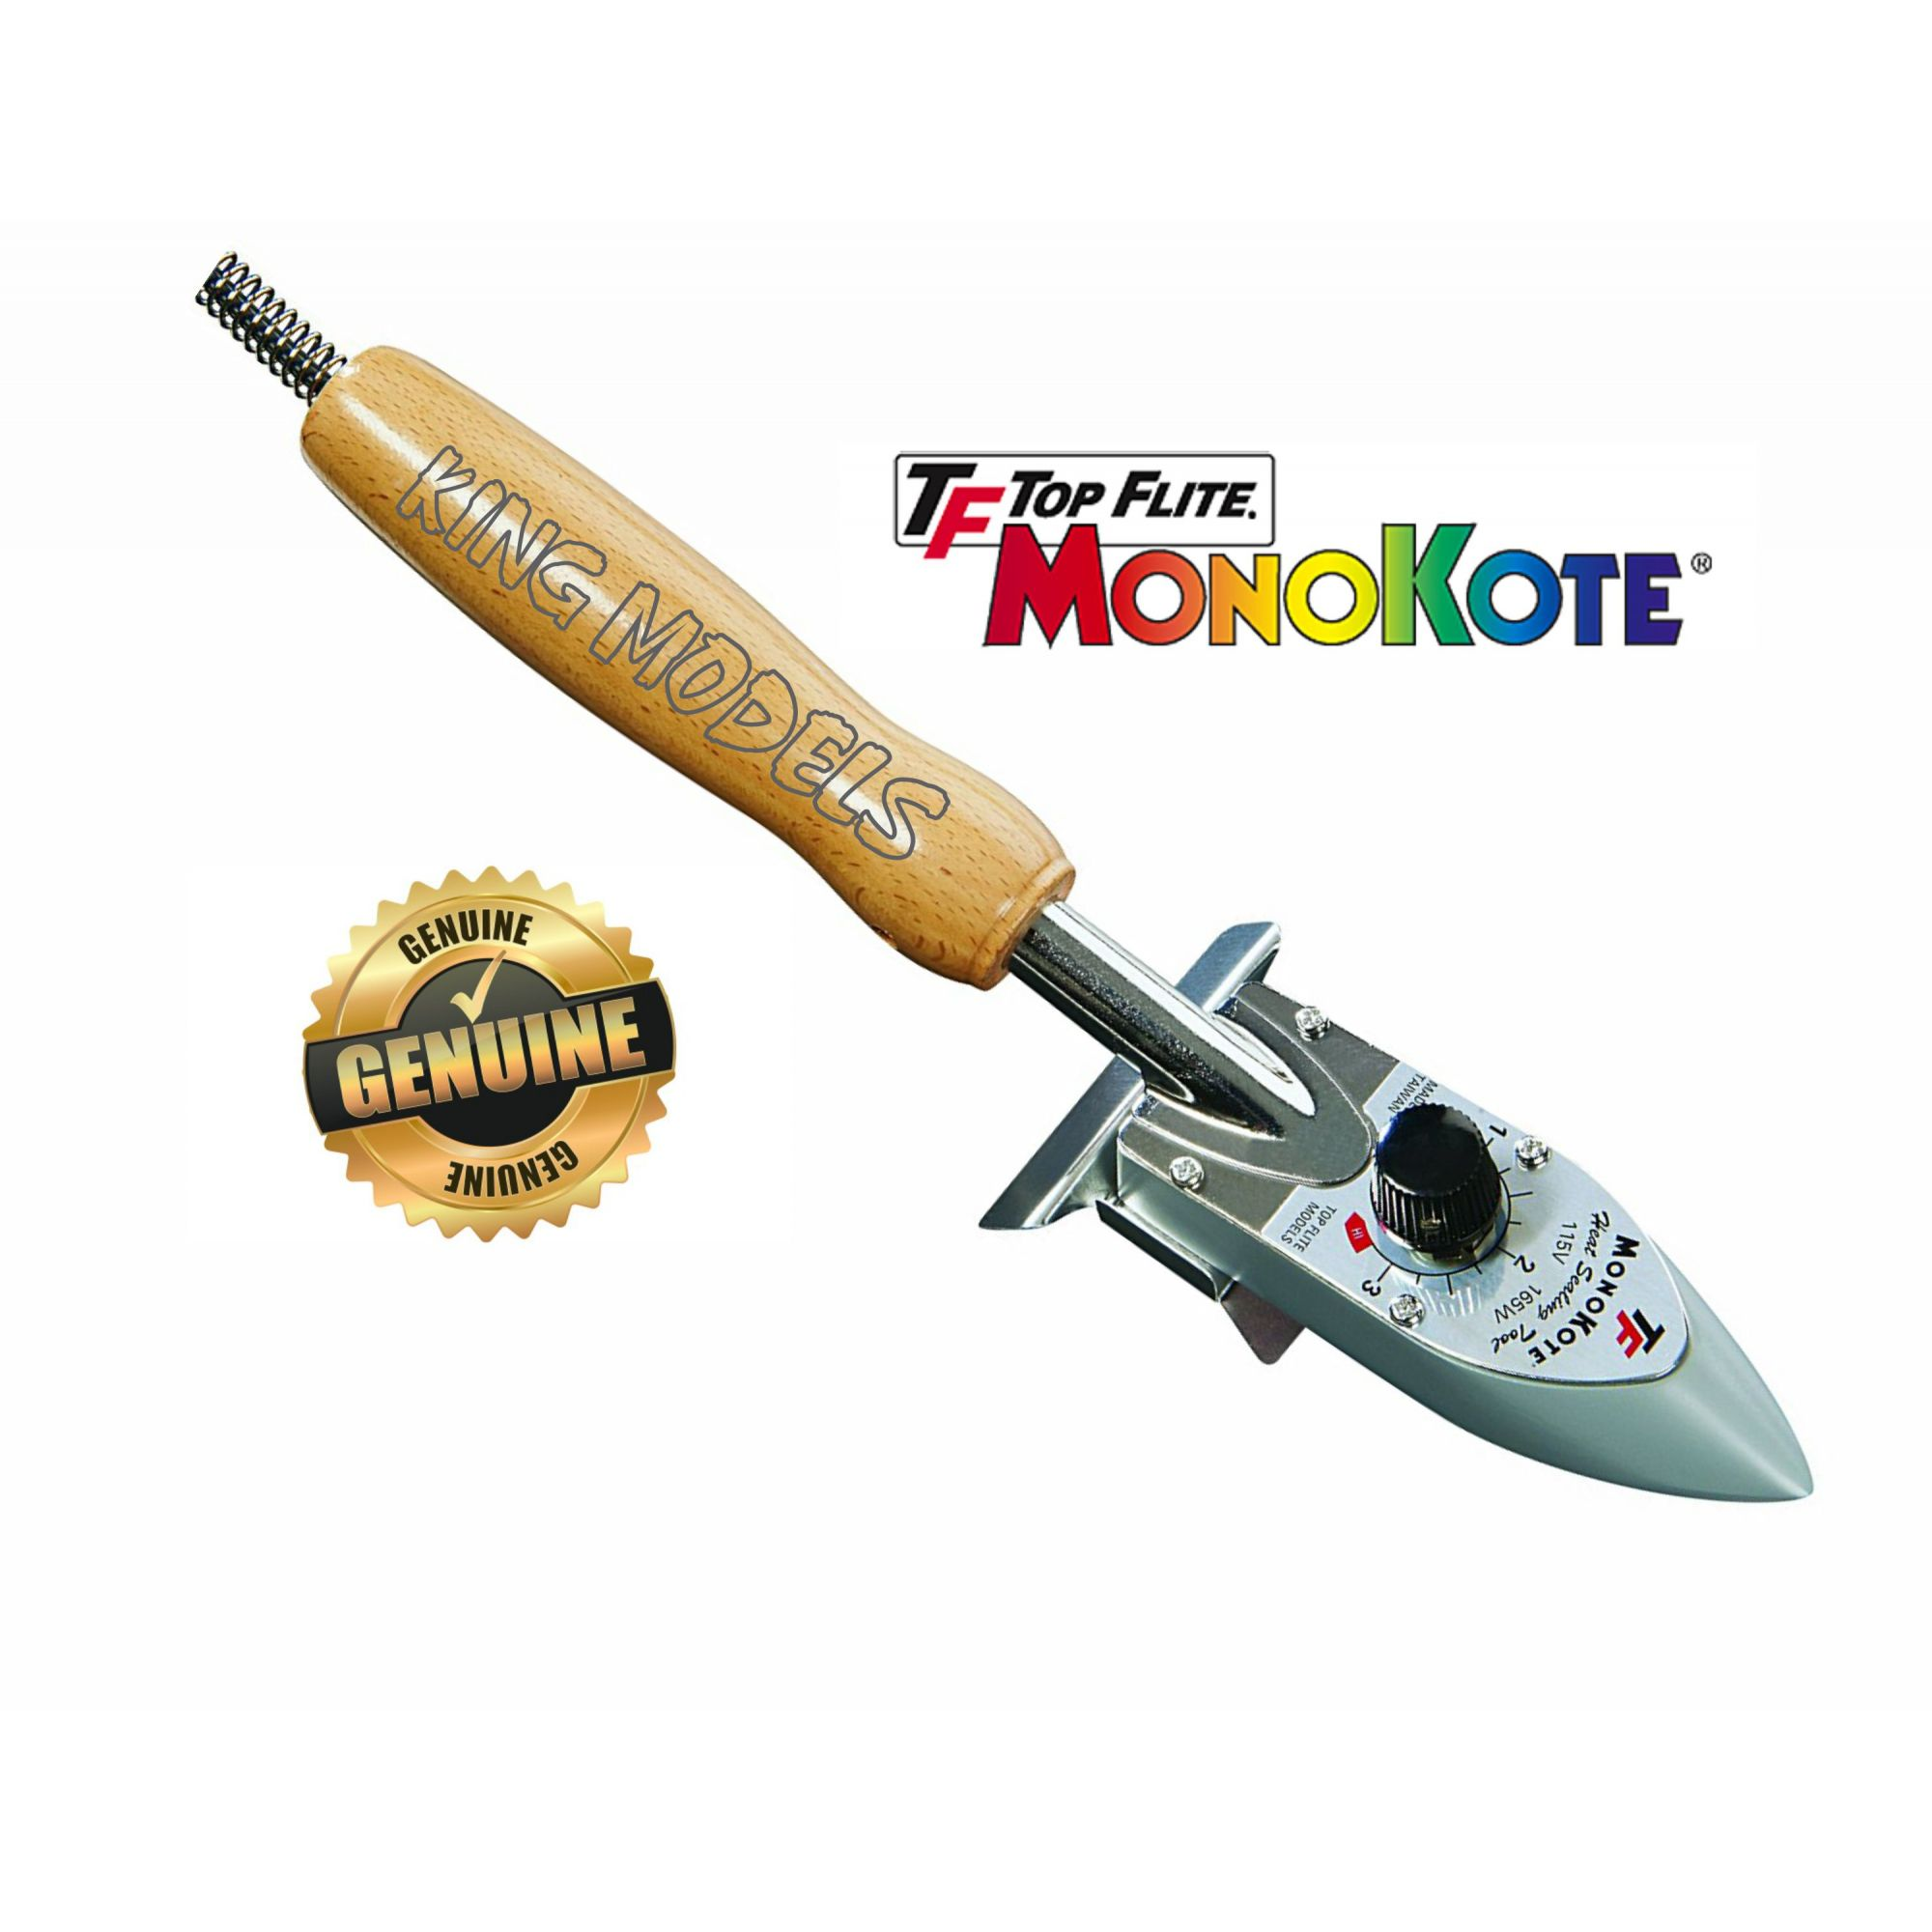 Ferro Para Entelagem De Aeros - Top flite - 110v - Original!!  - King Models